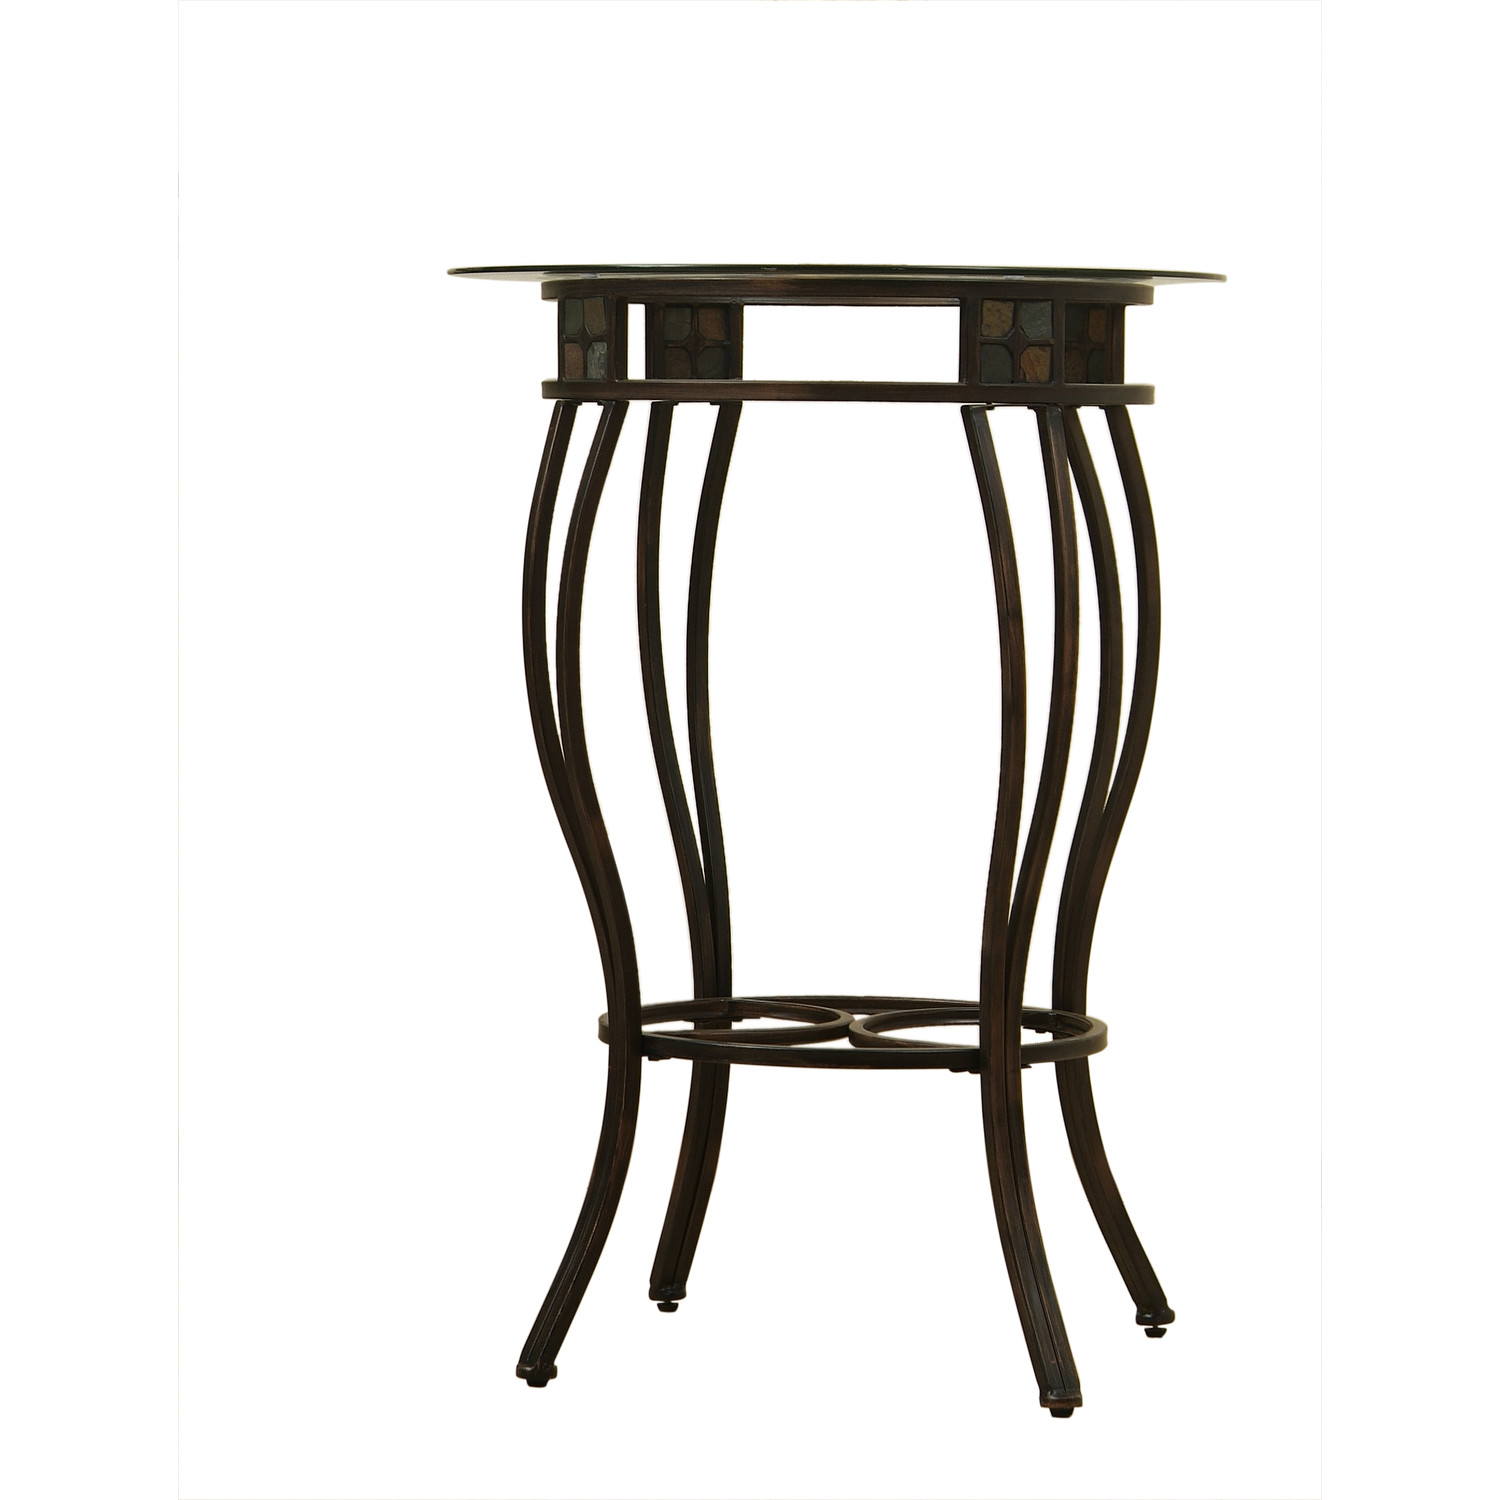 Small Round Industrial Pub Table With Long Legs